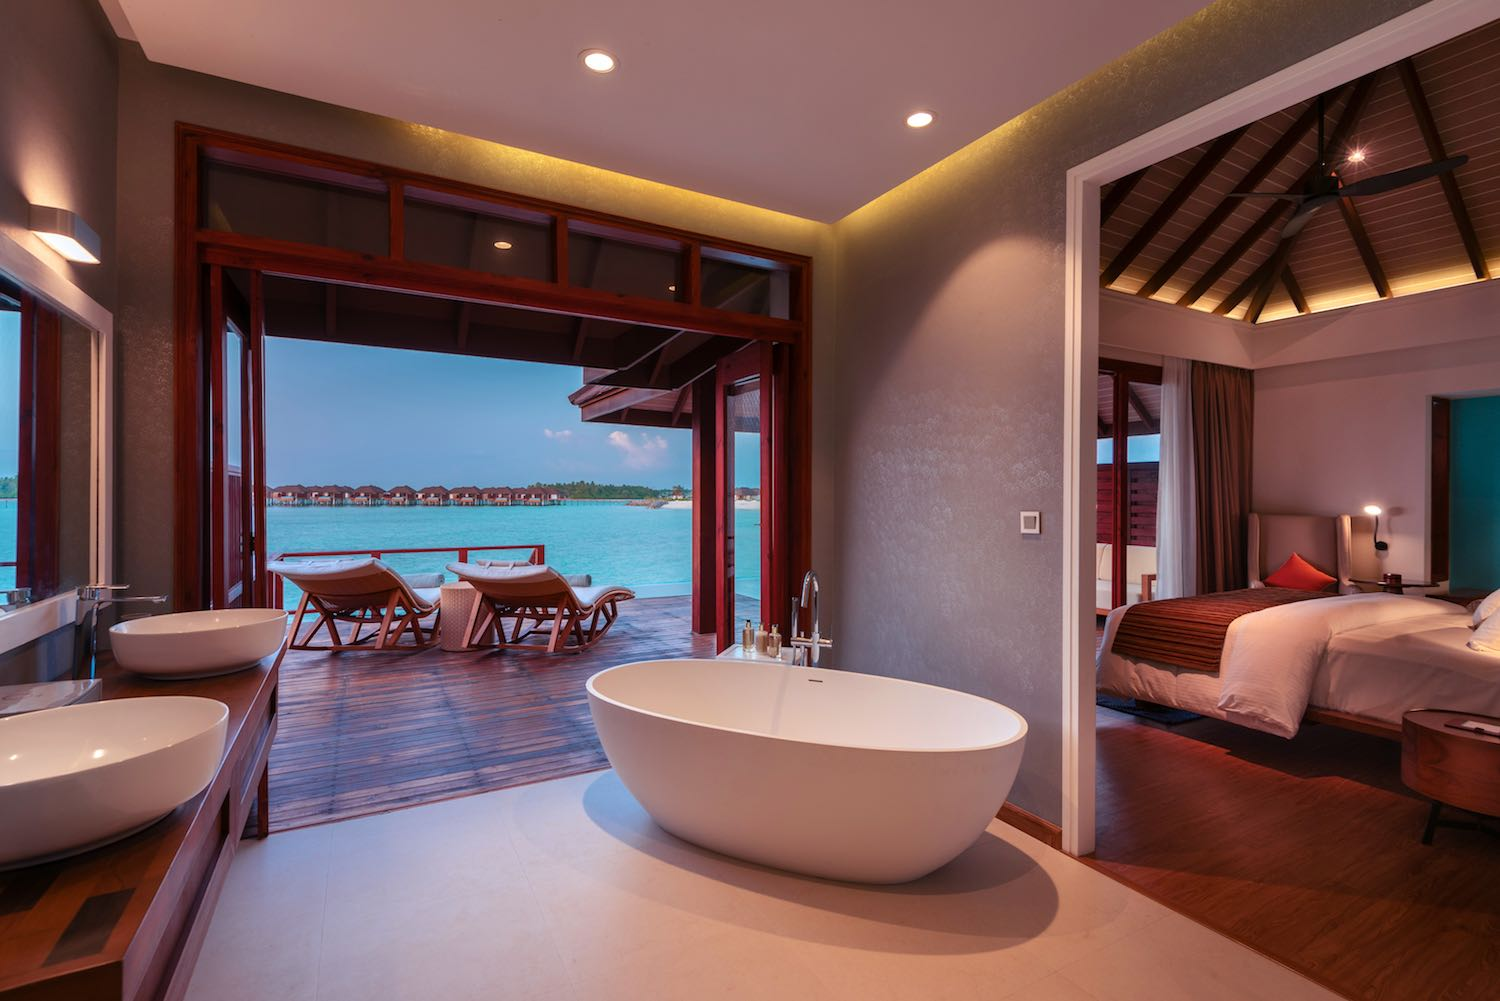 maldives-varu-by-atmosphere-water-villa-with-pool-villa-cross-section-at-dusk-holiday-honeymoon-vacation-invite-to-paradise.jpg